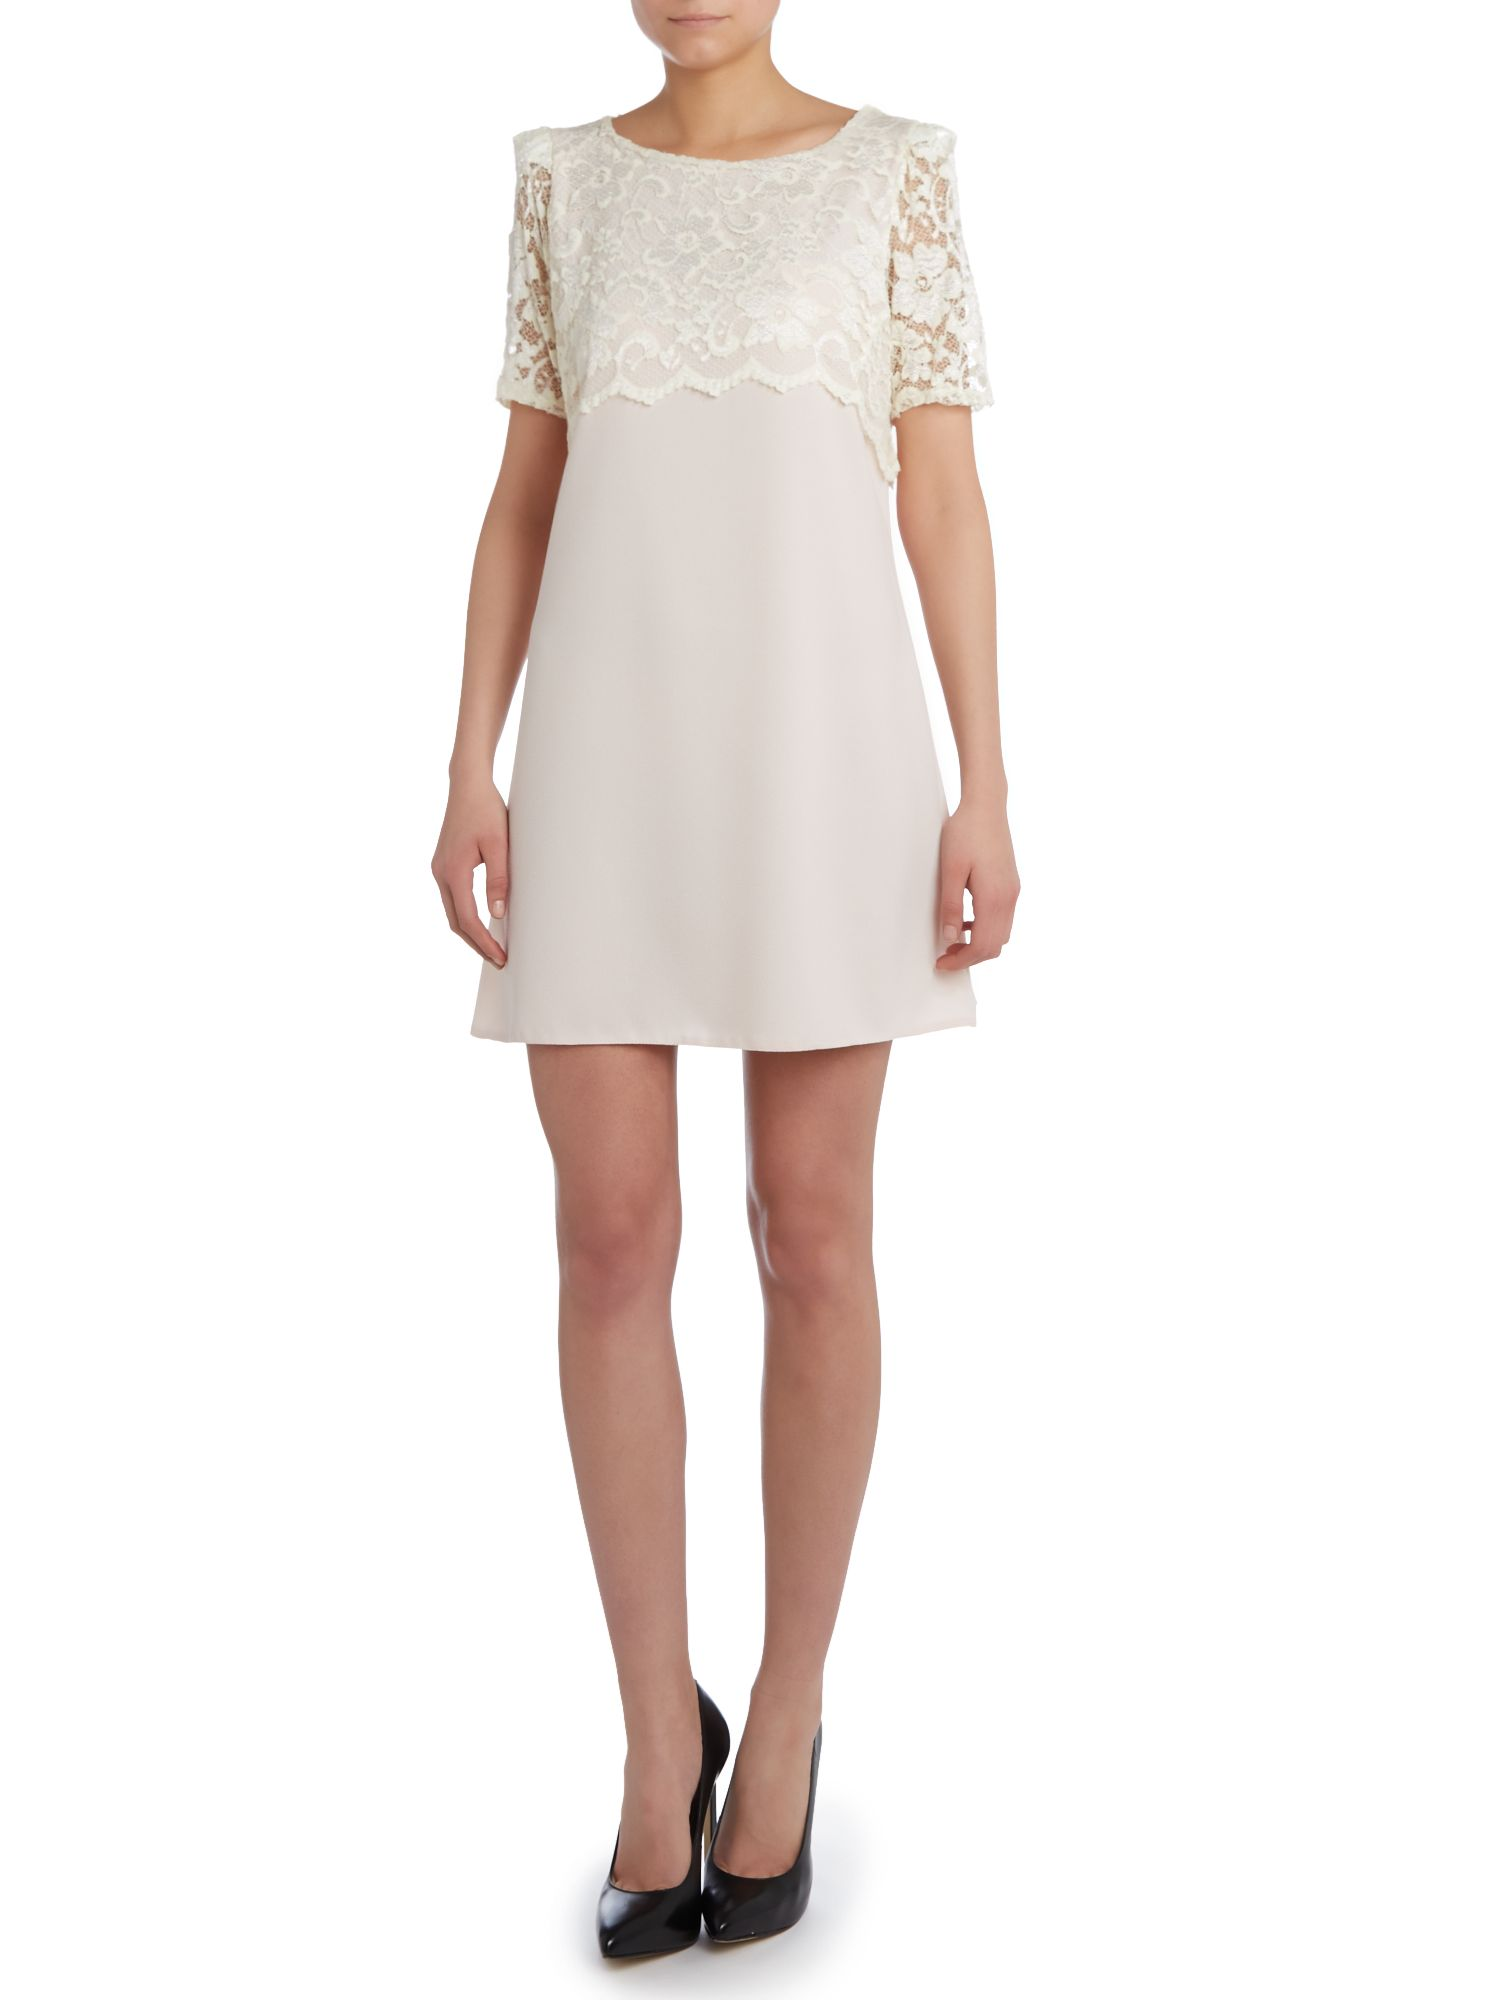 Short sleeved lace top shift dress